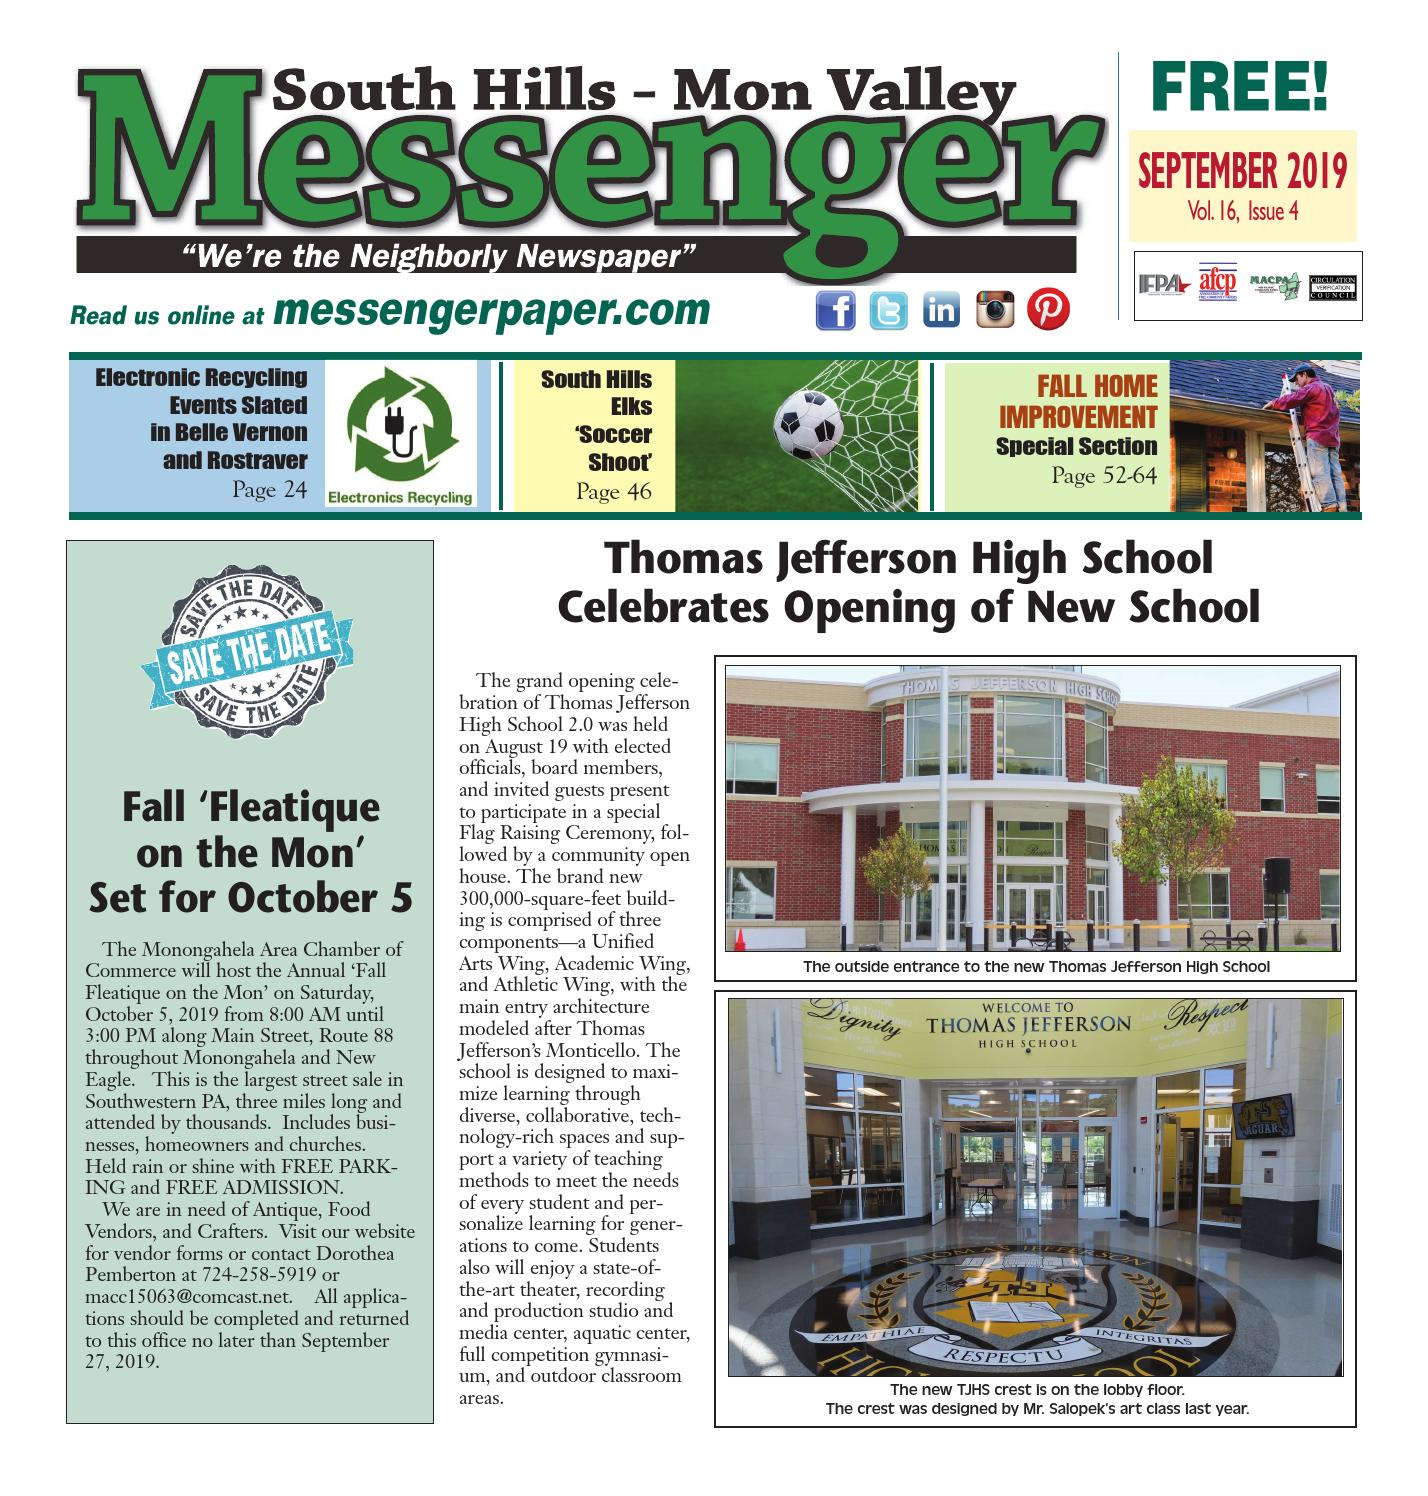 South Hills Mon Valley Messenger September 2019 By South Hills Mon Valley Messenger Issuu